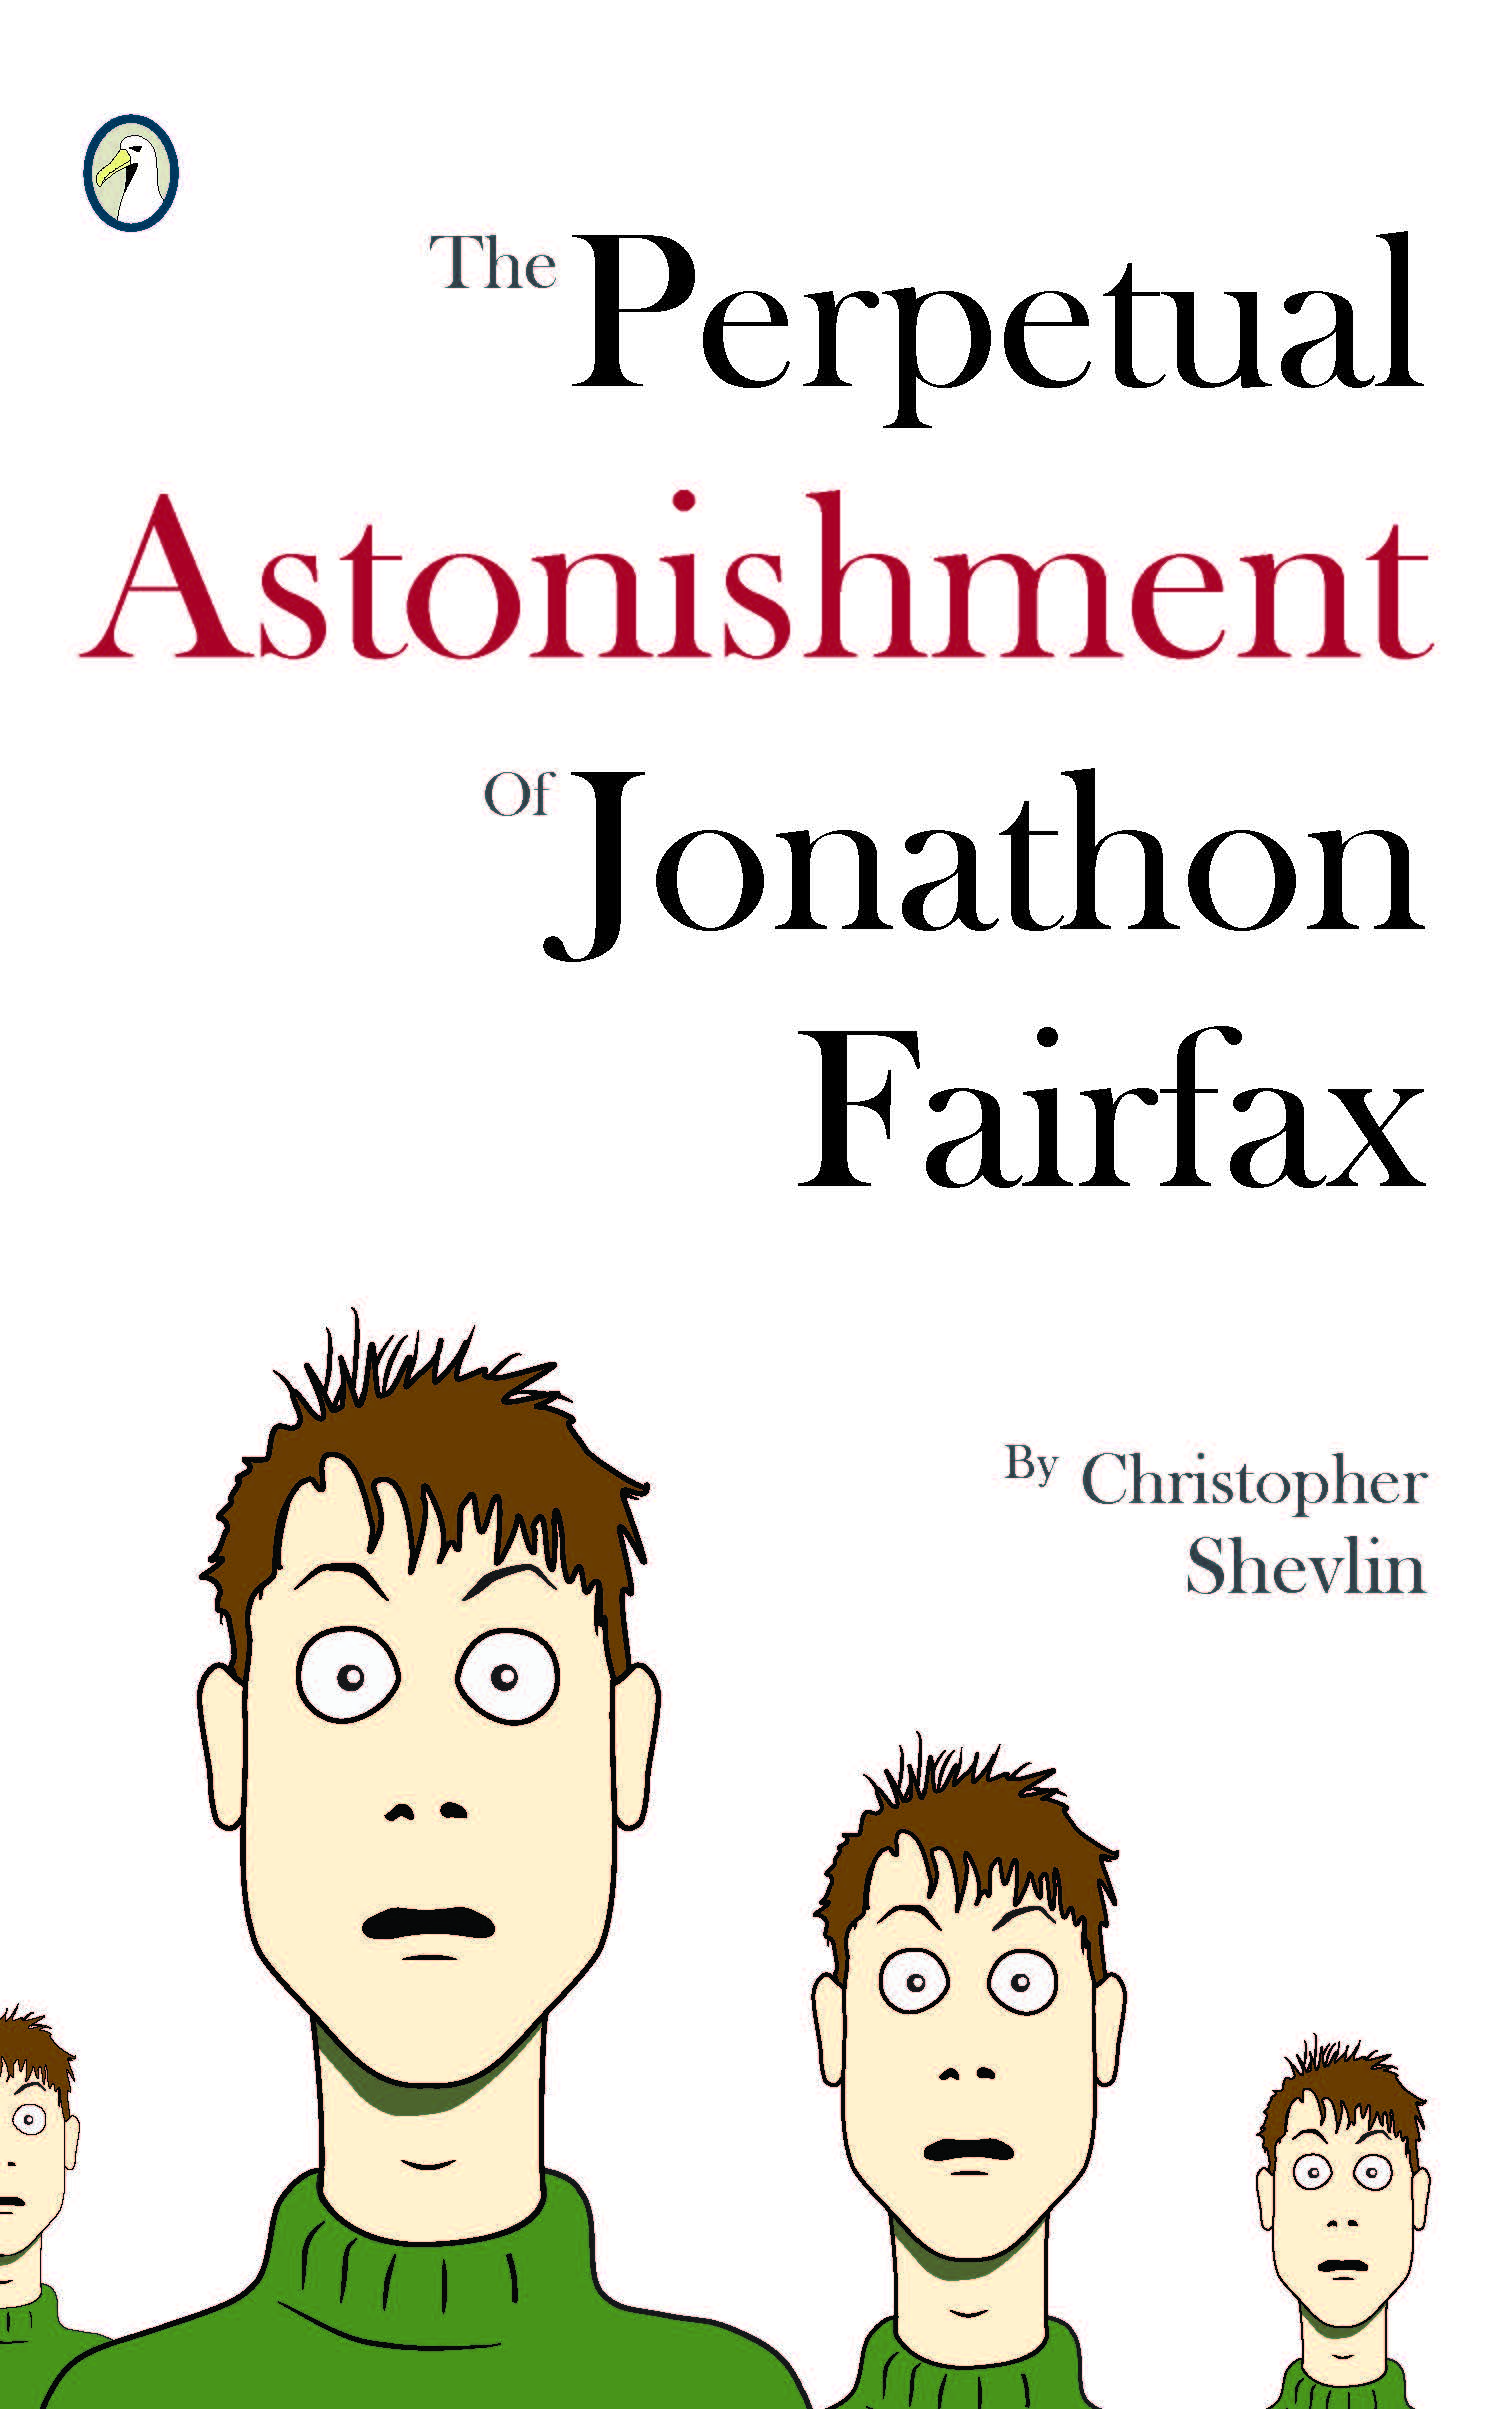 Front cover of The Perpetual Astonishment of Jonathon Fairfax